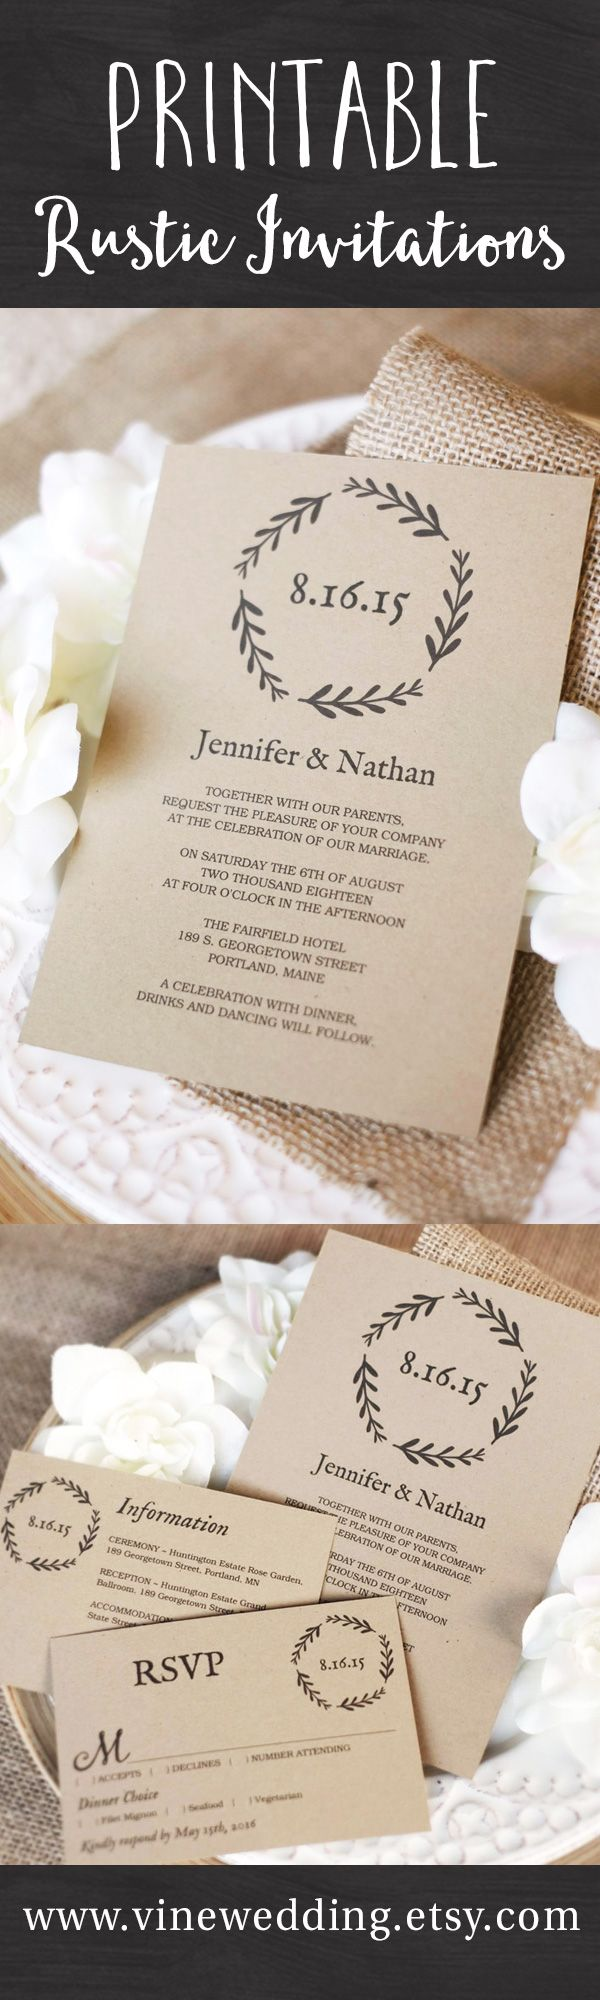 Best 25 Print invitations online ideas – Create Invitations Online Free No Download